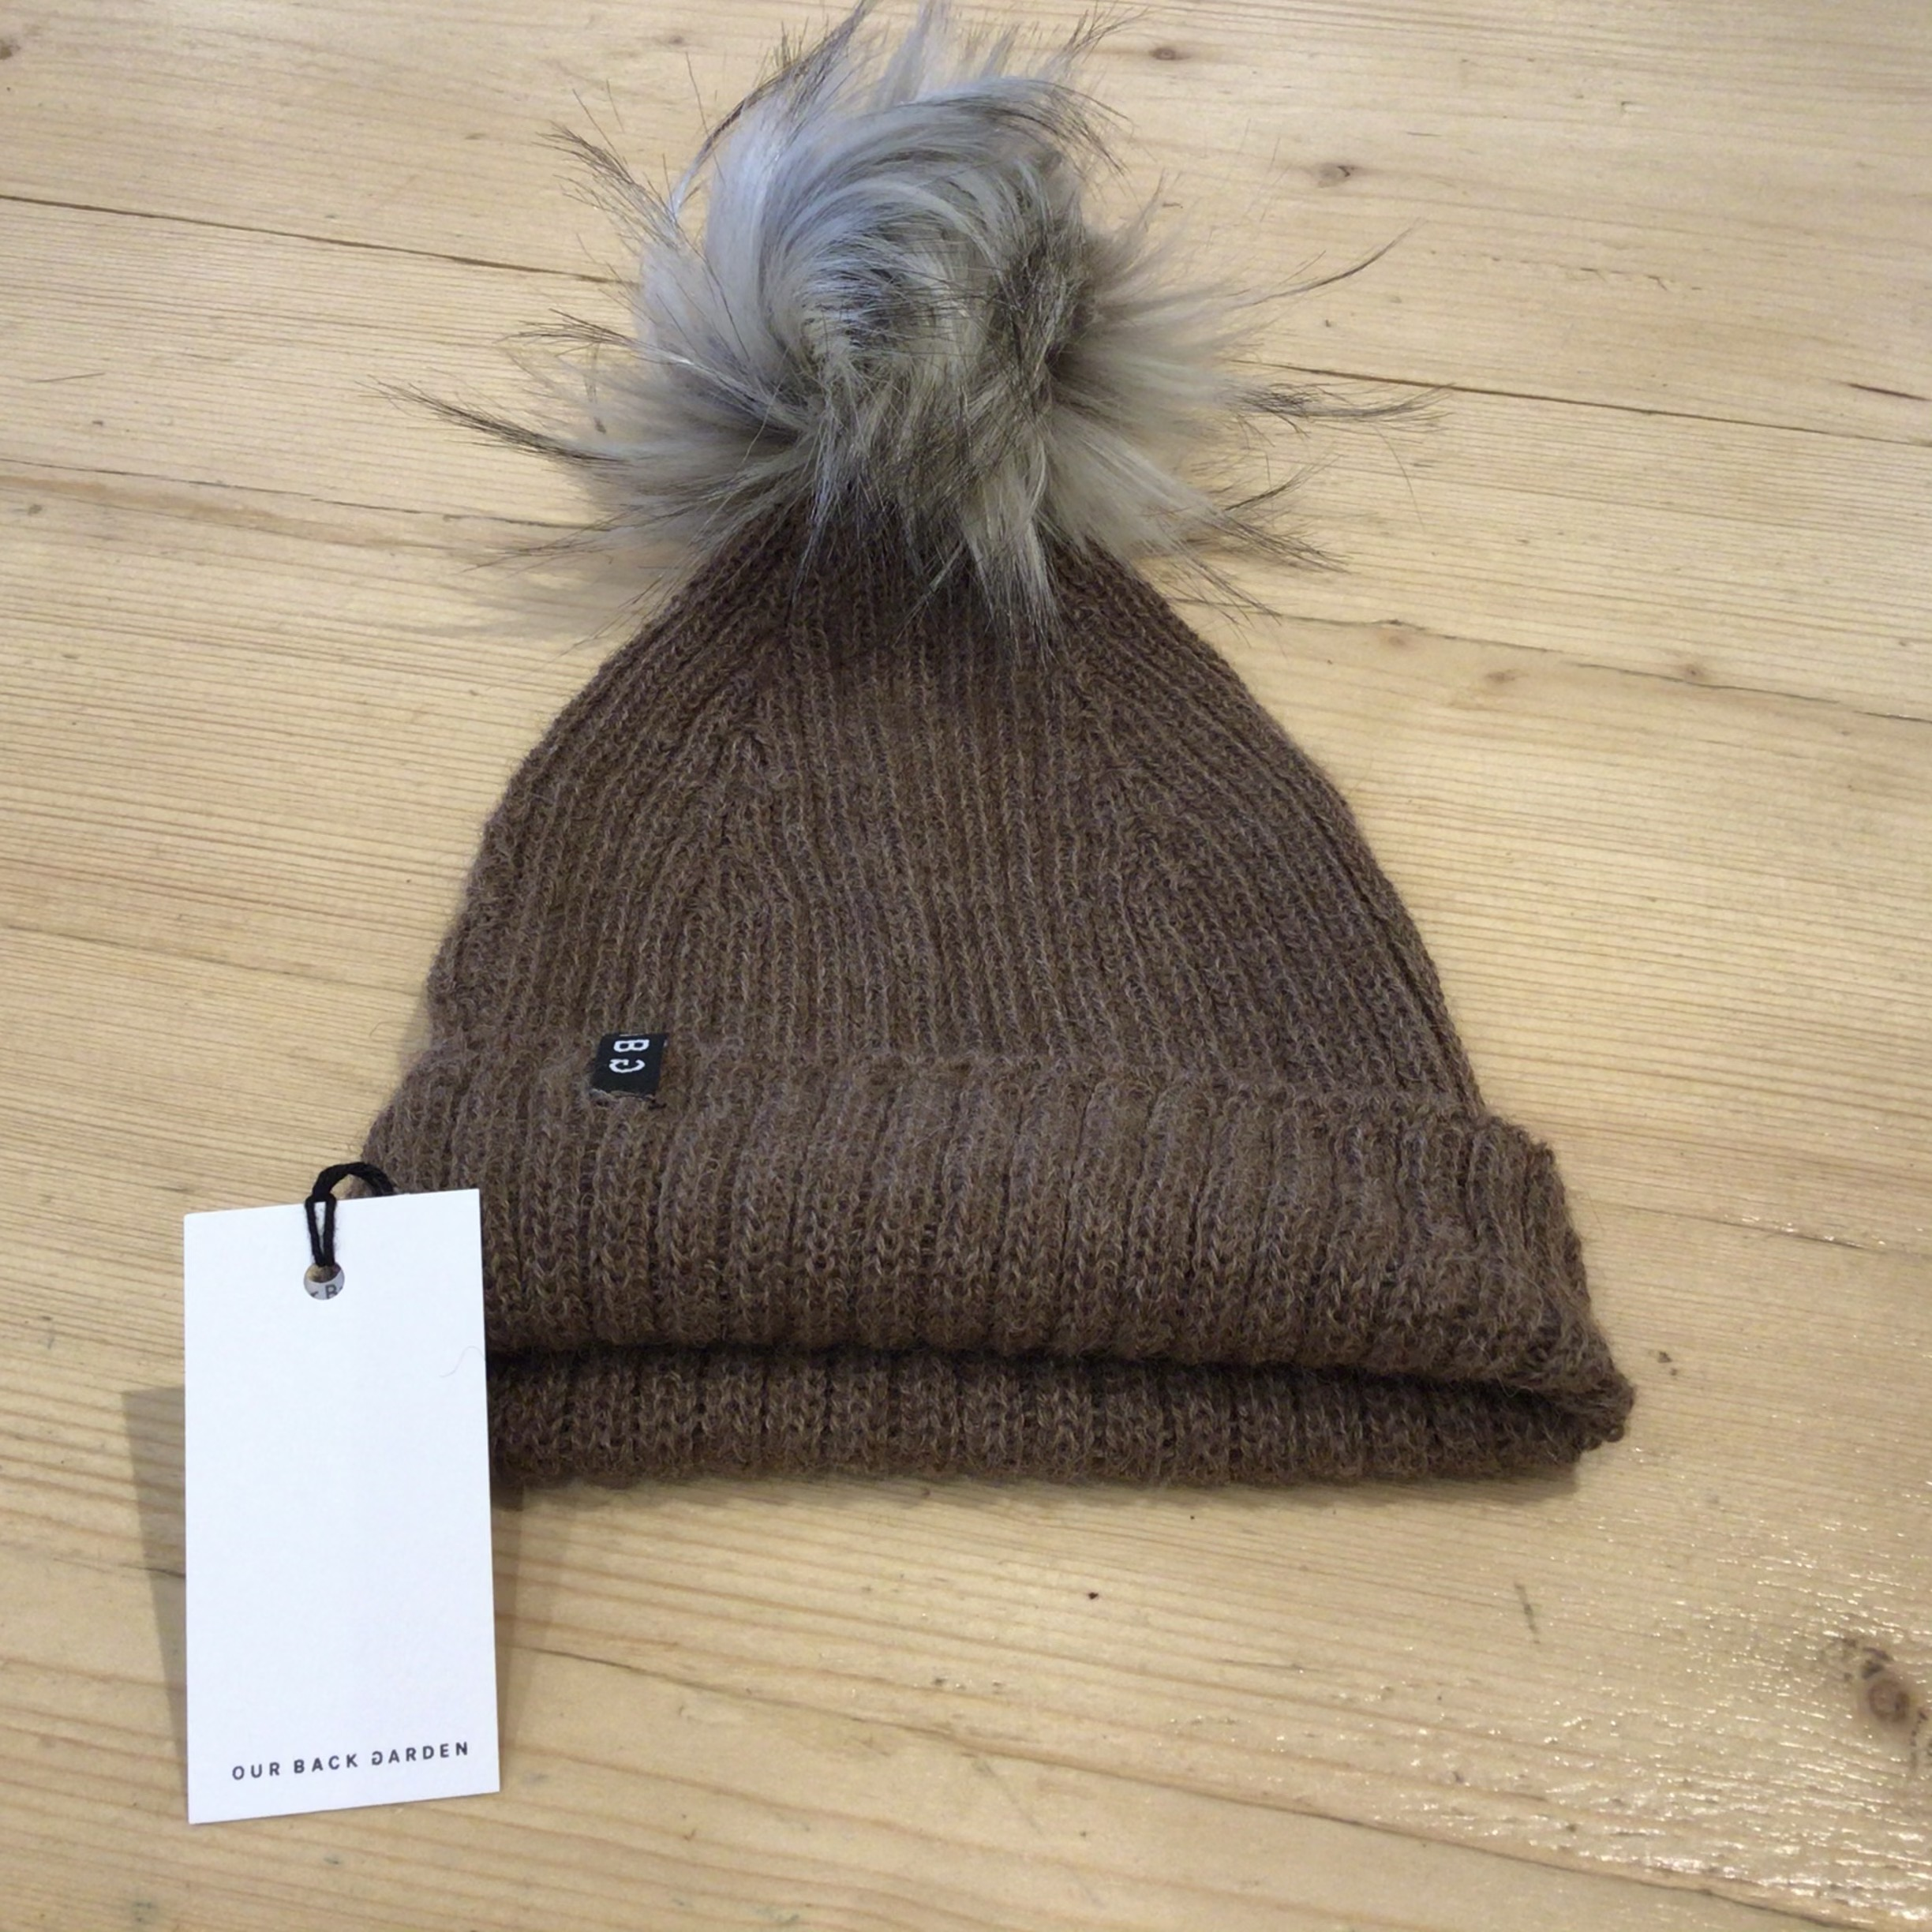 OBG - 100% Alpaca wool hat with Pom Pom, Walnut & Raccoon